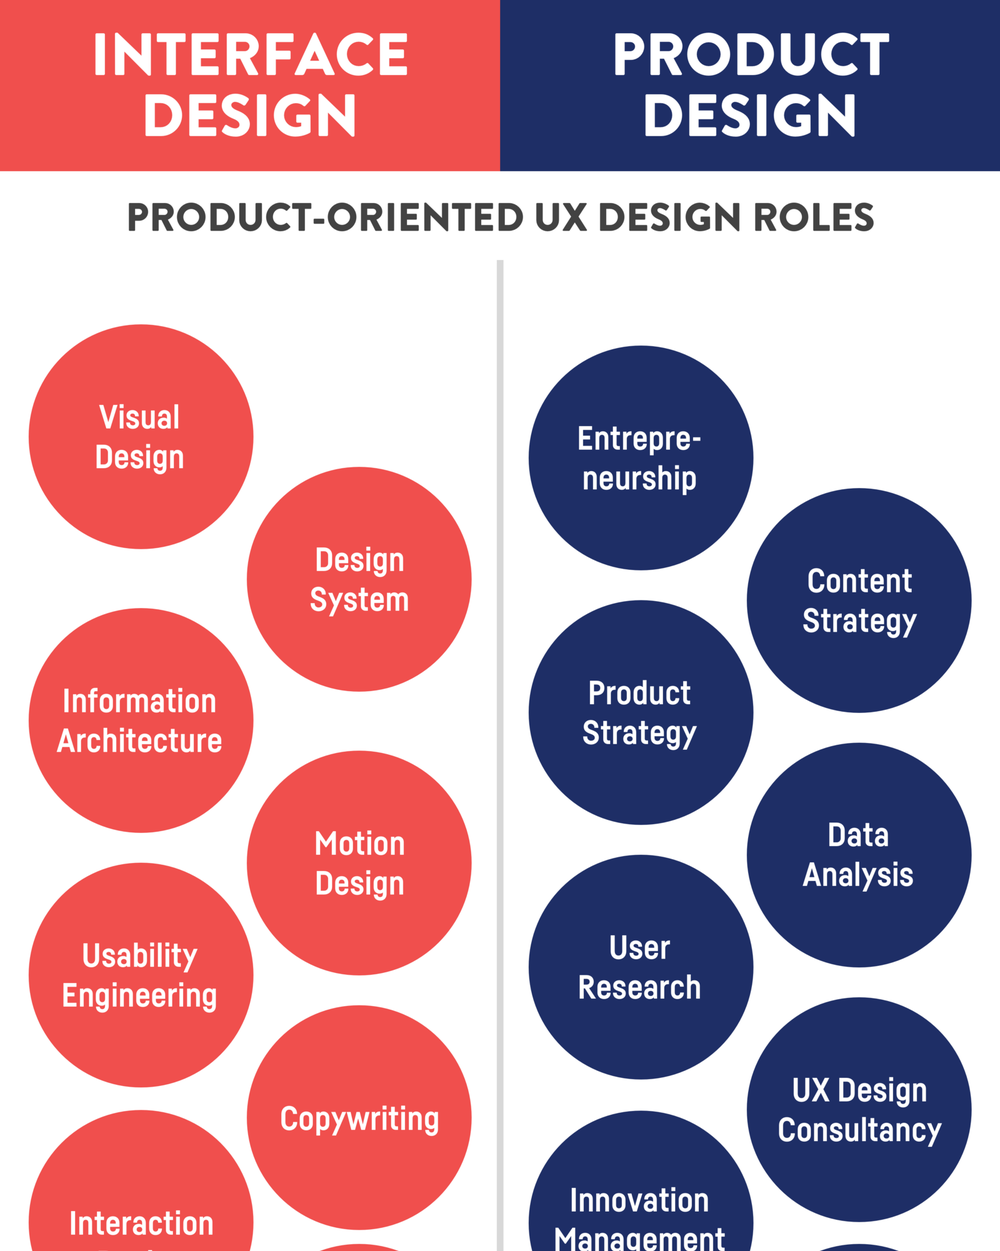 Product-oriented UX design roles